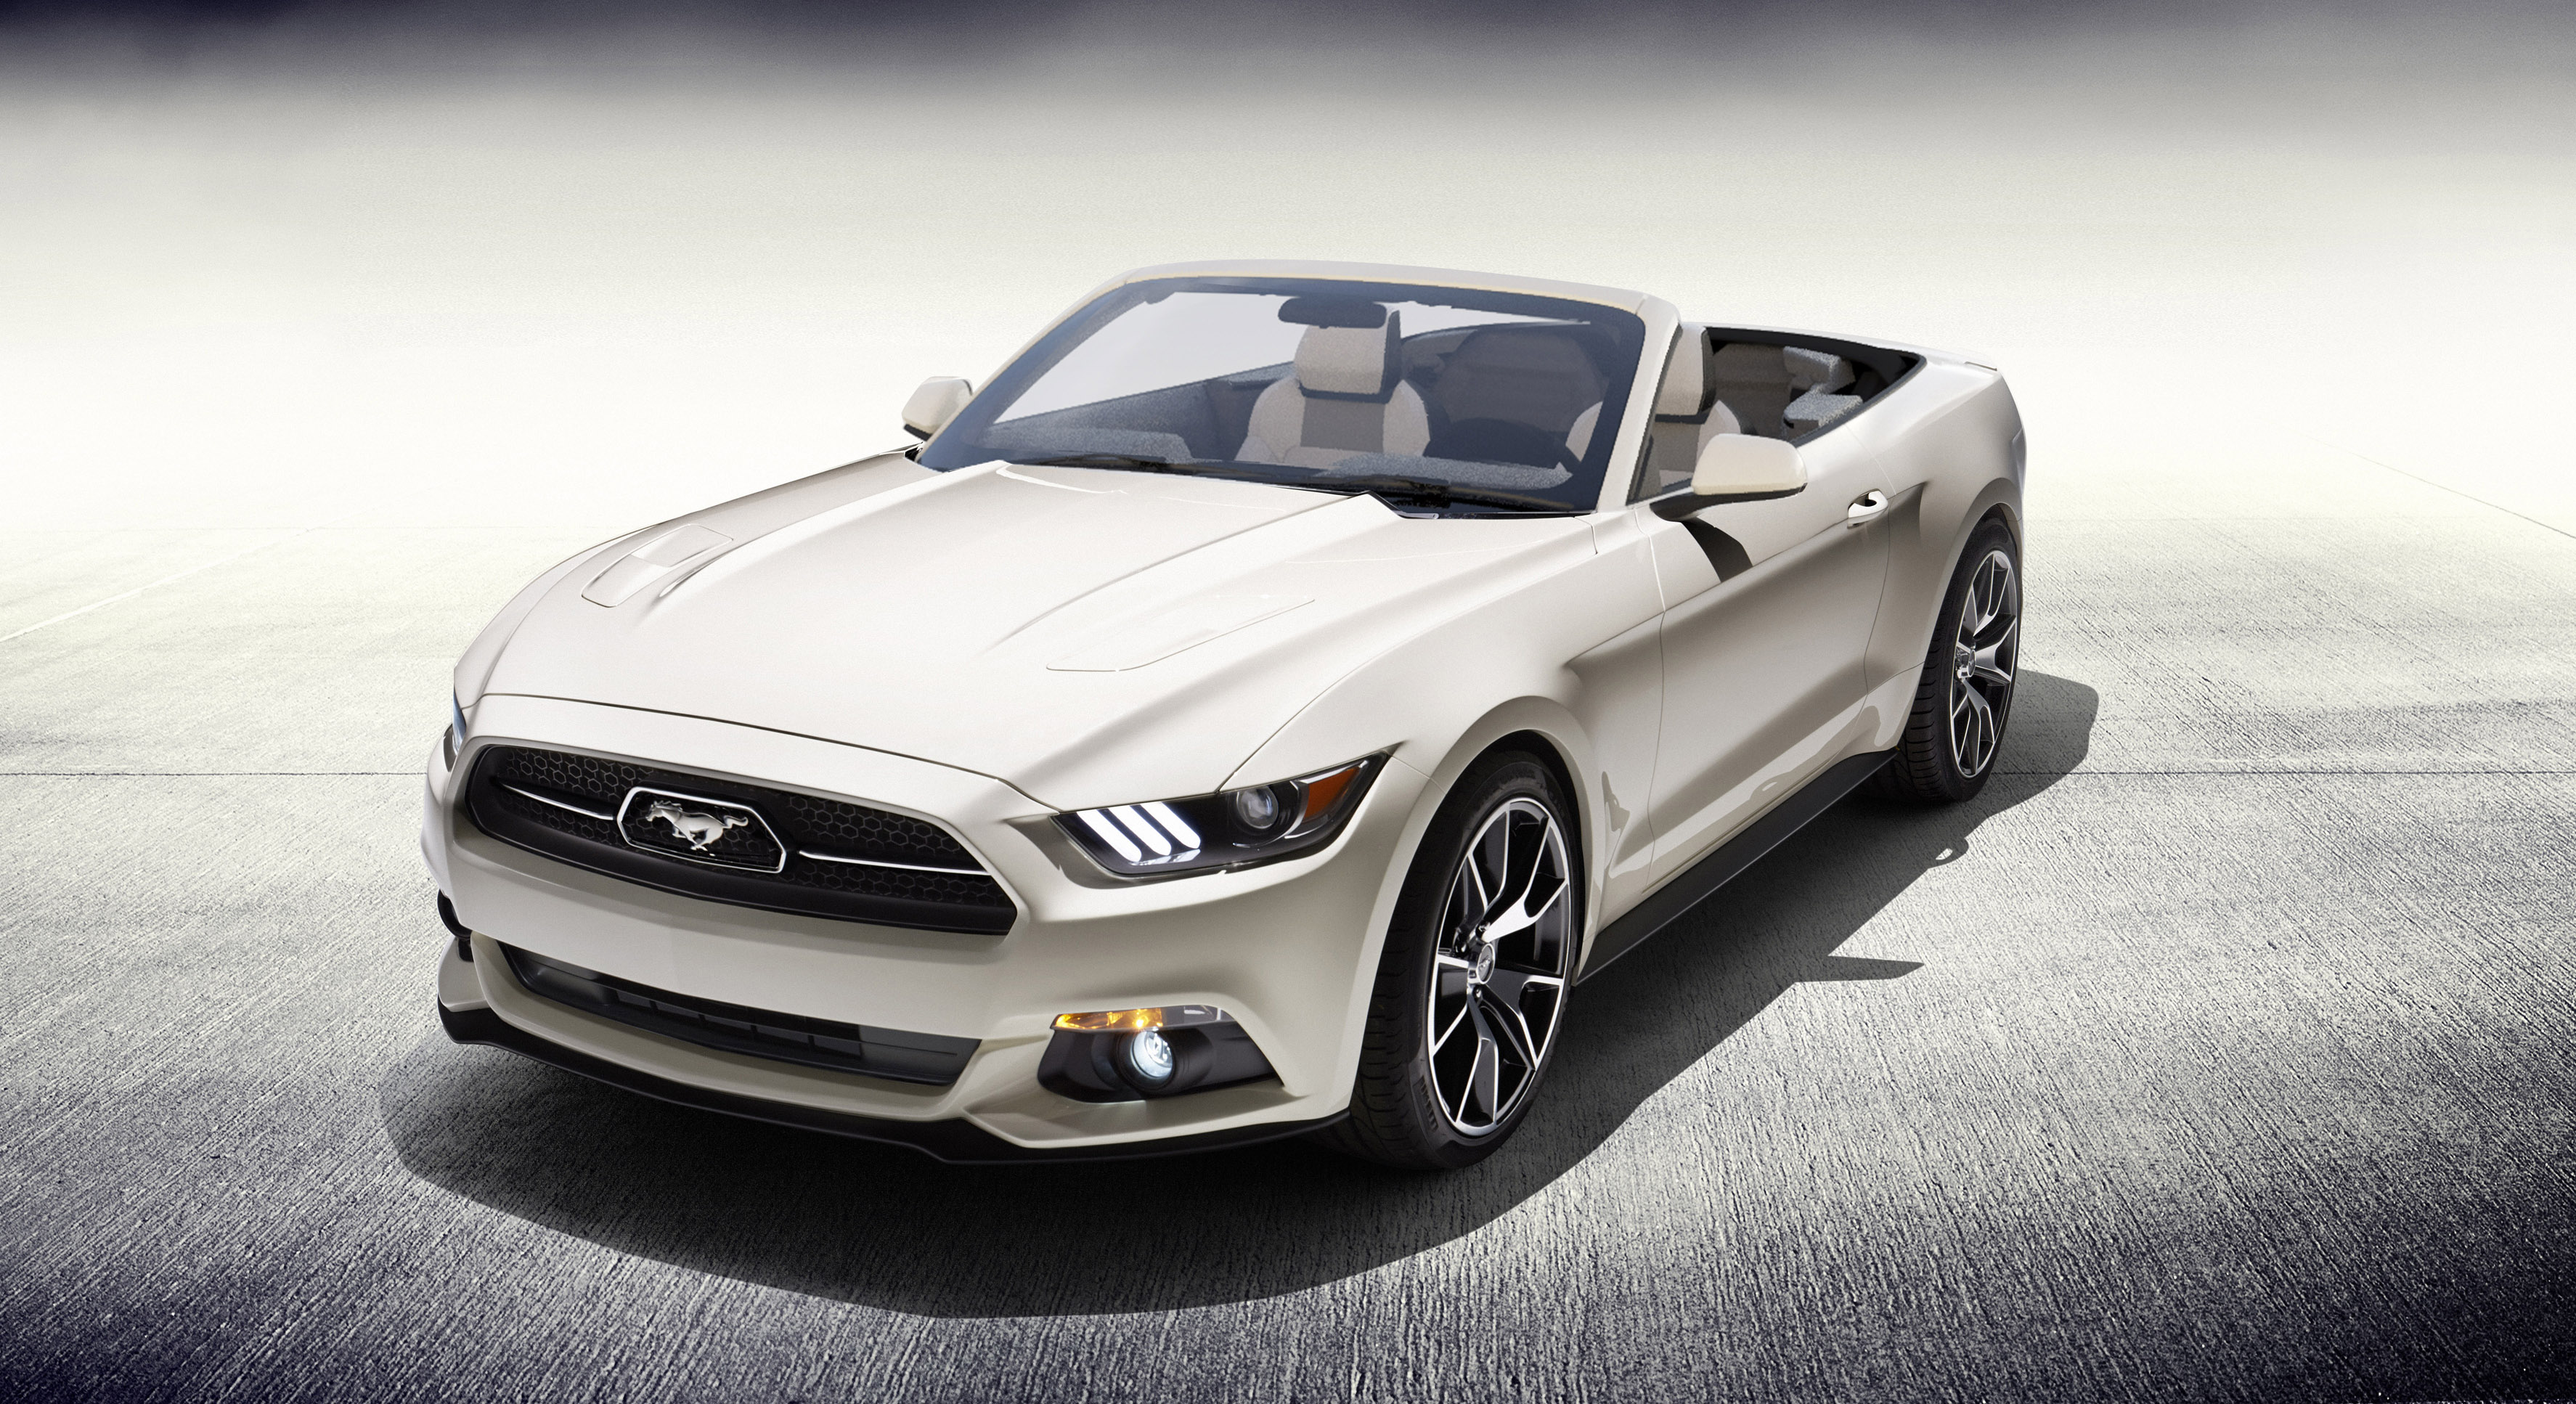 2015 mustang motor review. Black Bedroom Furniture Sets. Home Design Ideas